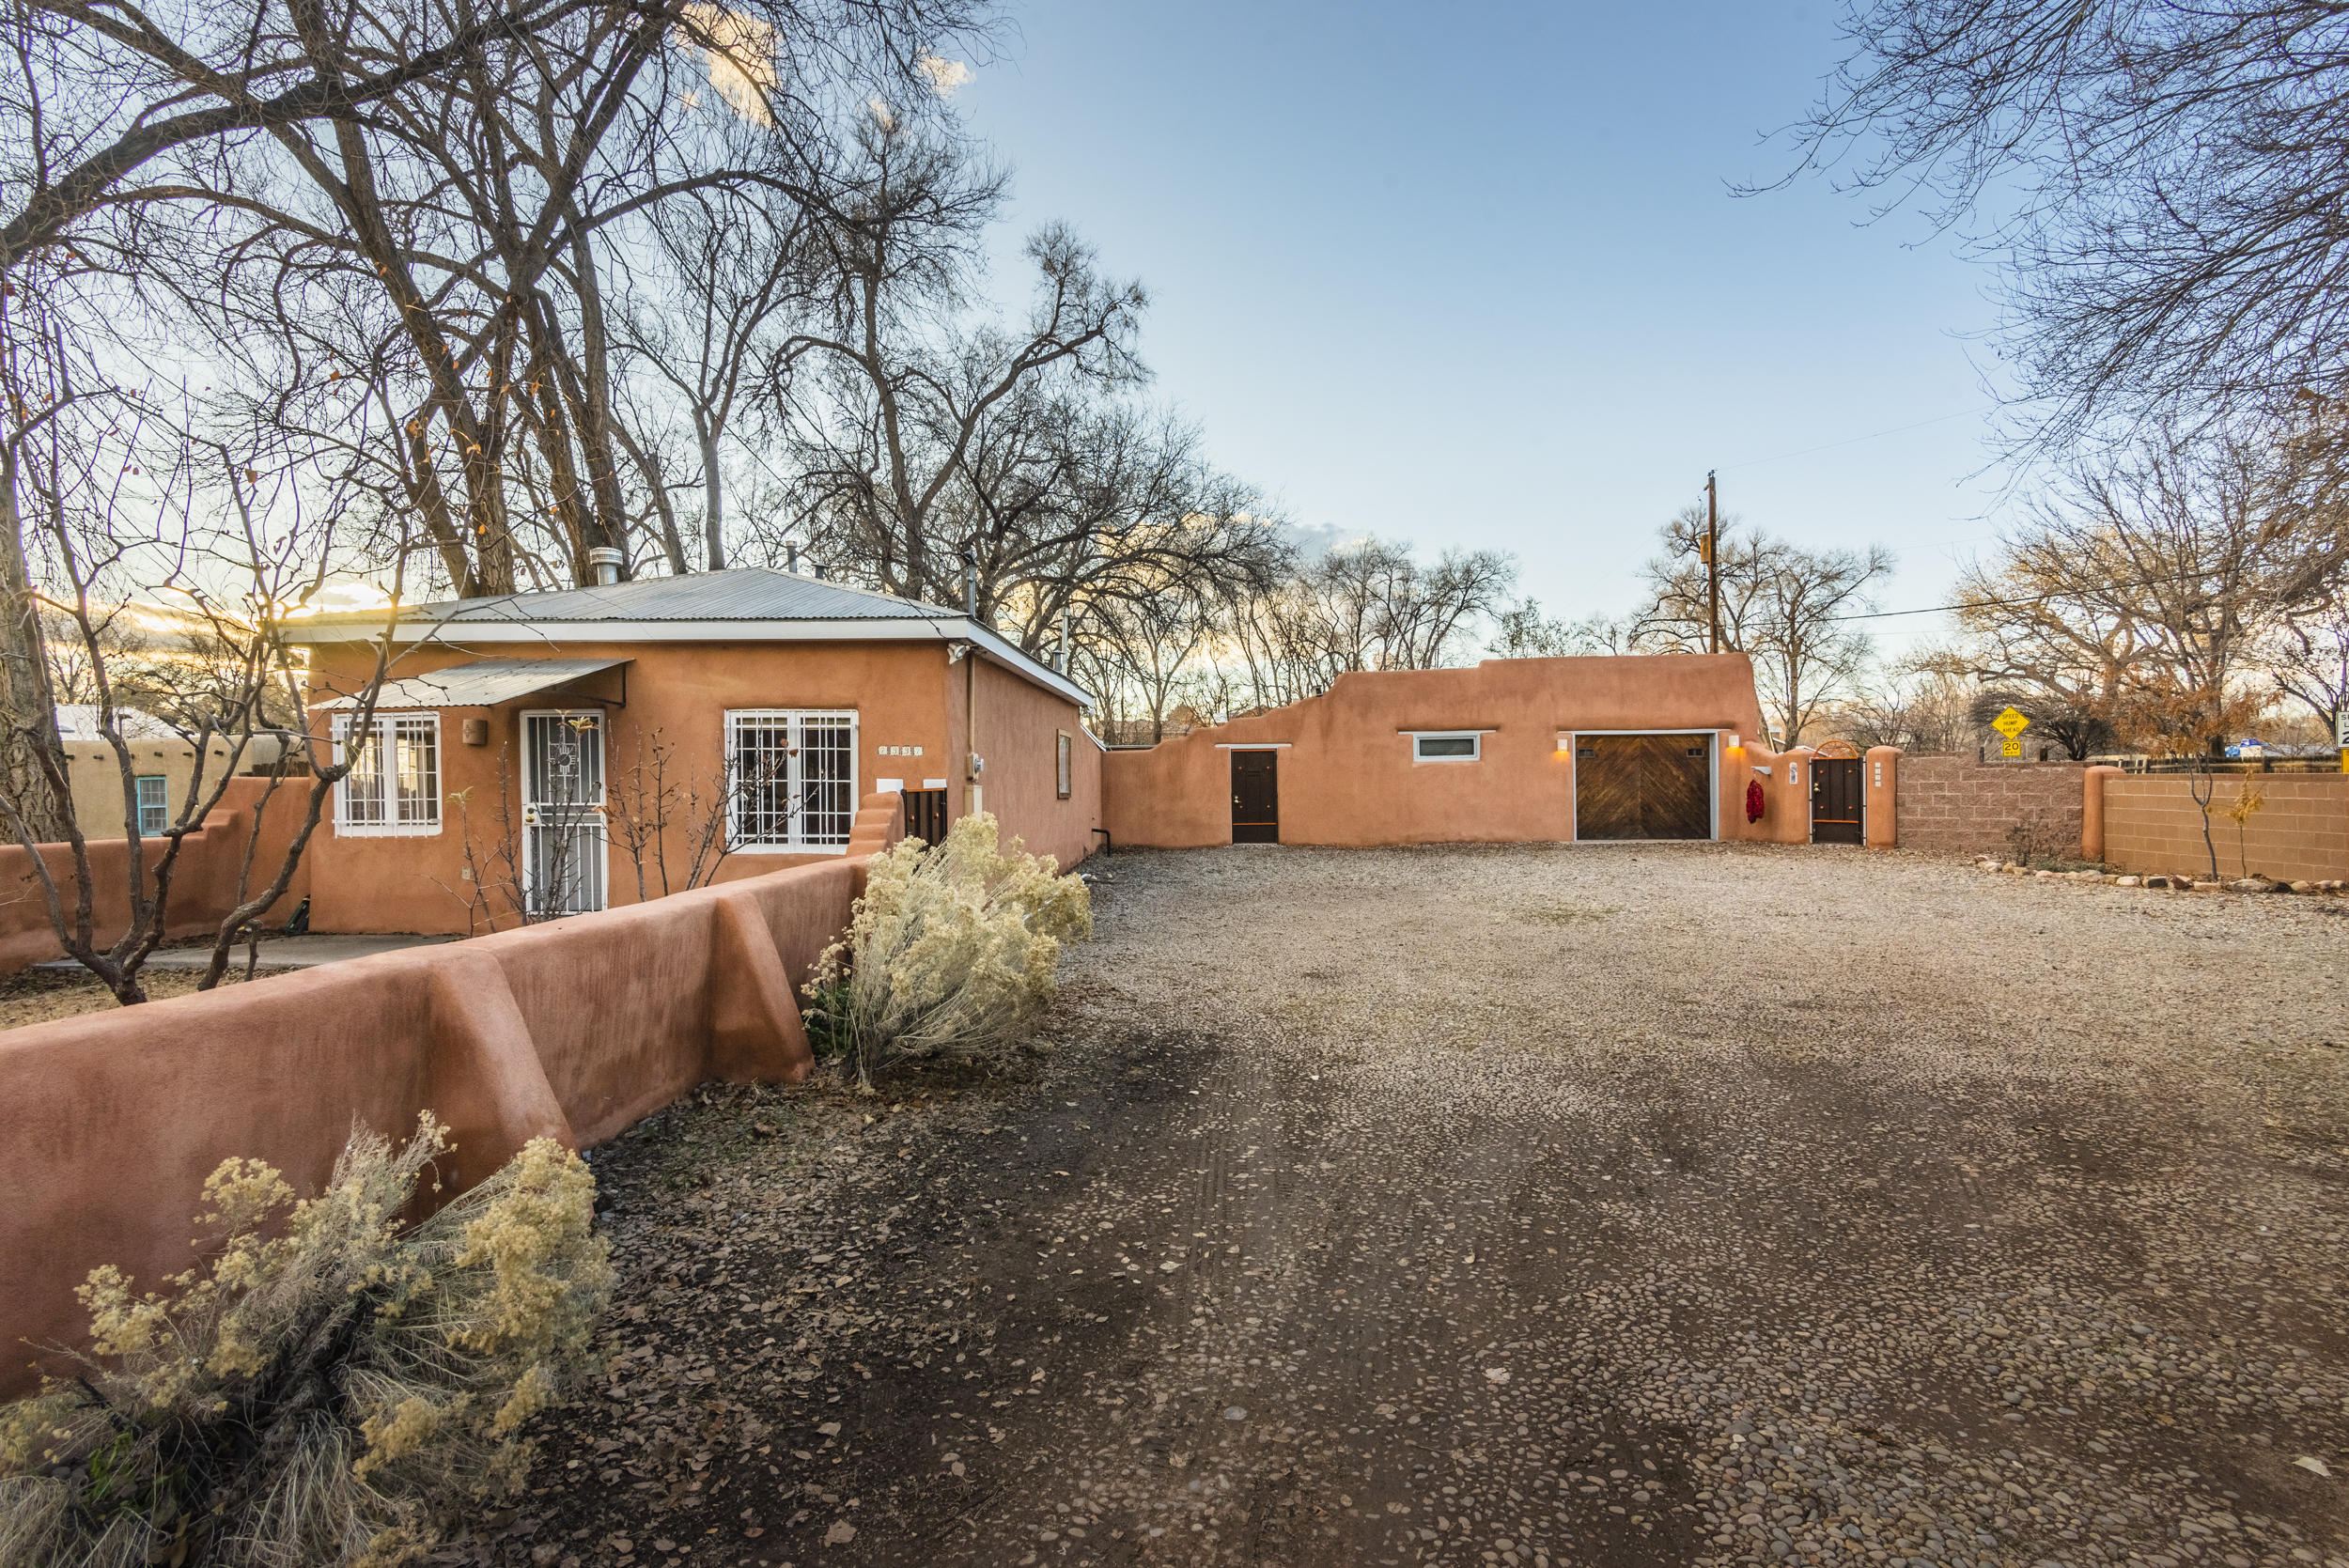 7339 GUADALUPE Trail NW, Los Ranchos, NM 87107 - Los Ranchos, NM real estate listing